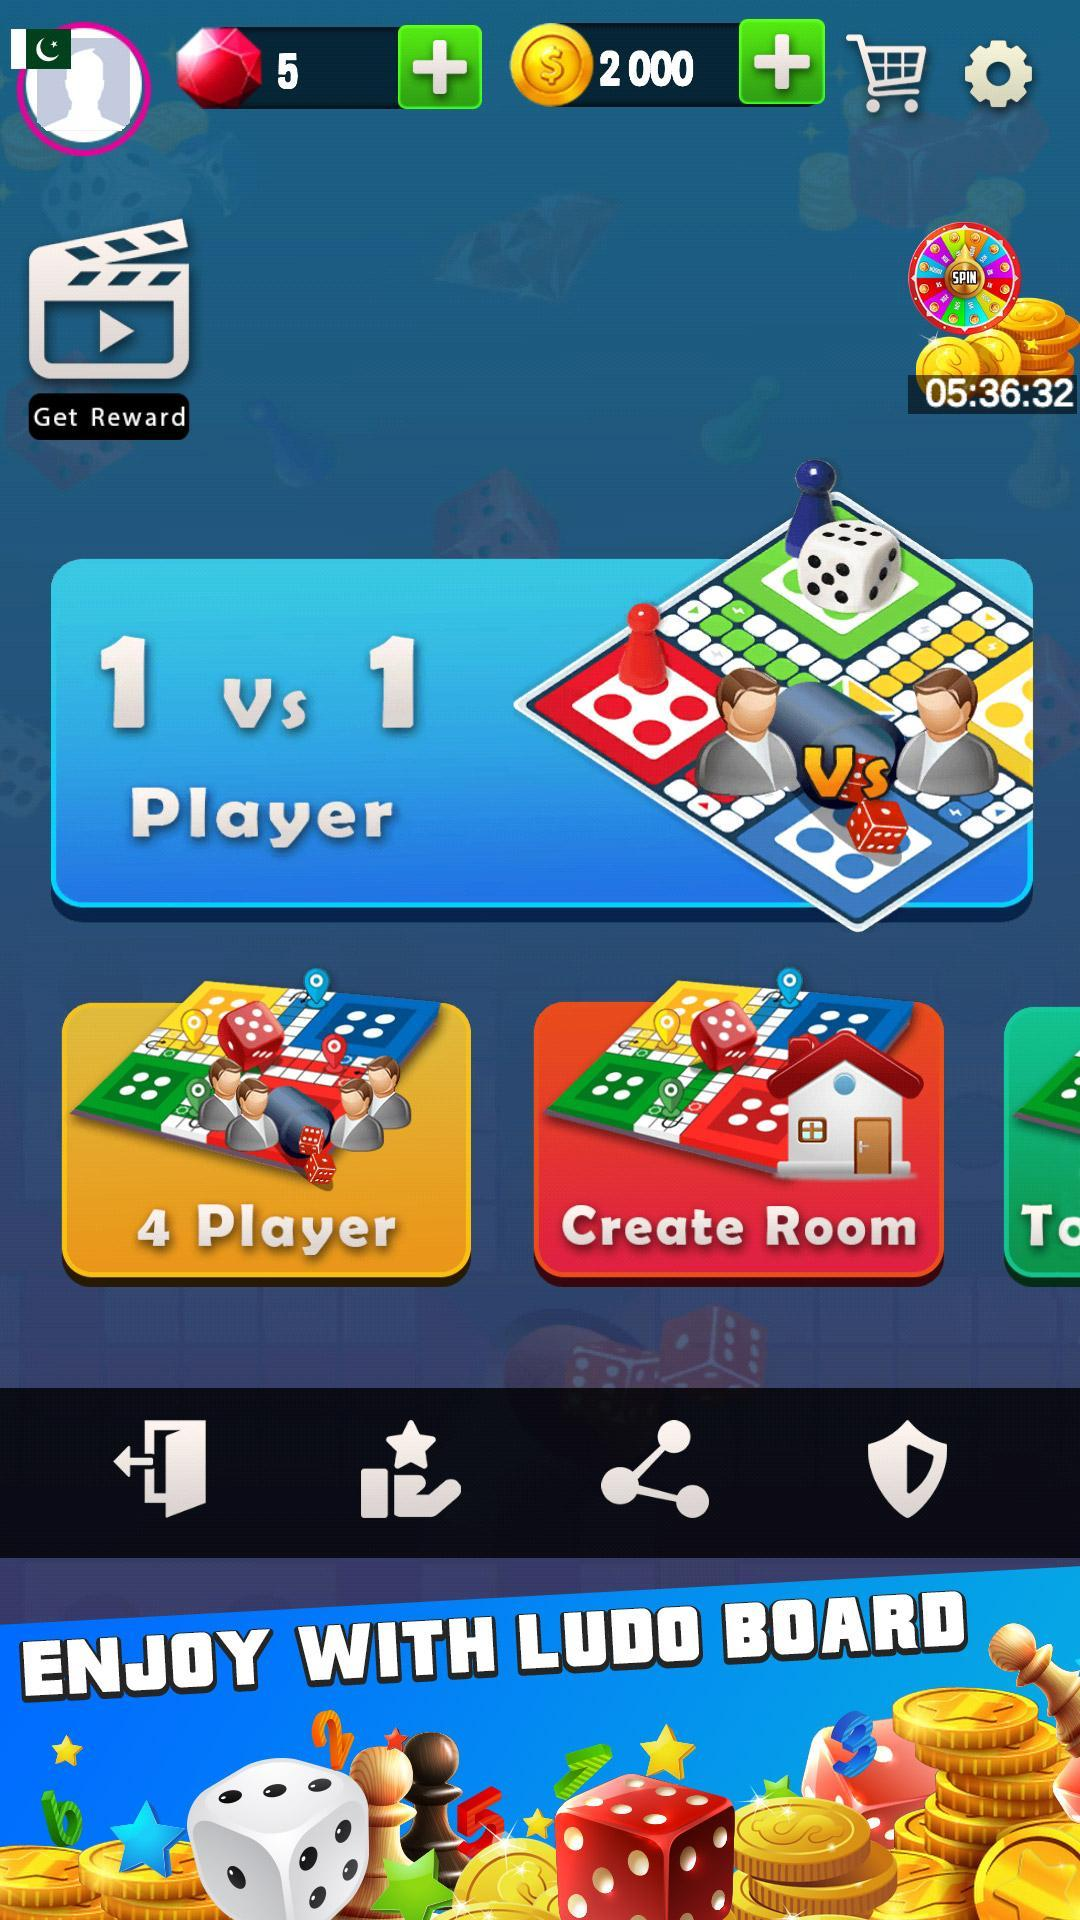 King of Ludo Dice Game with Free Voice Chat 2020 1.5.2 Screenshot 11